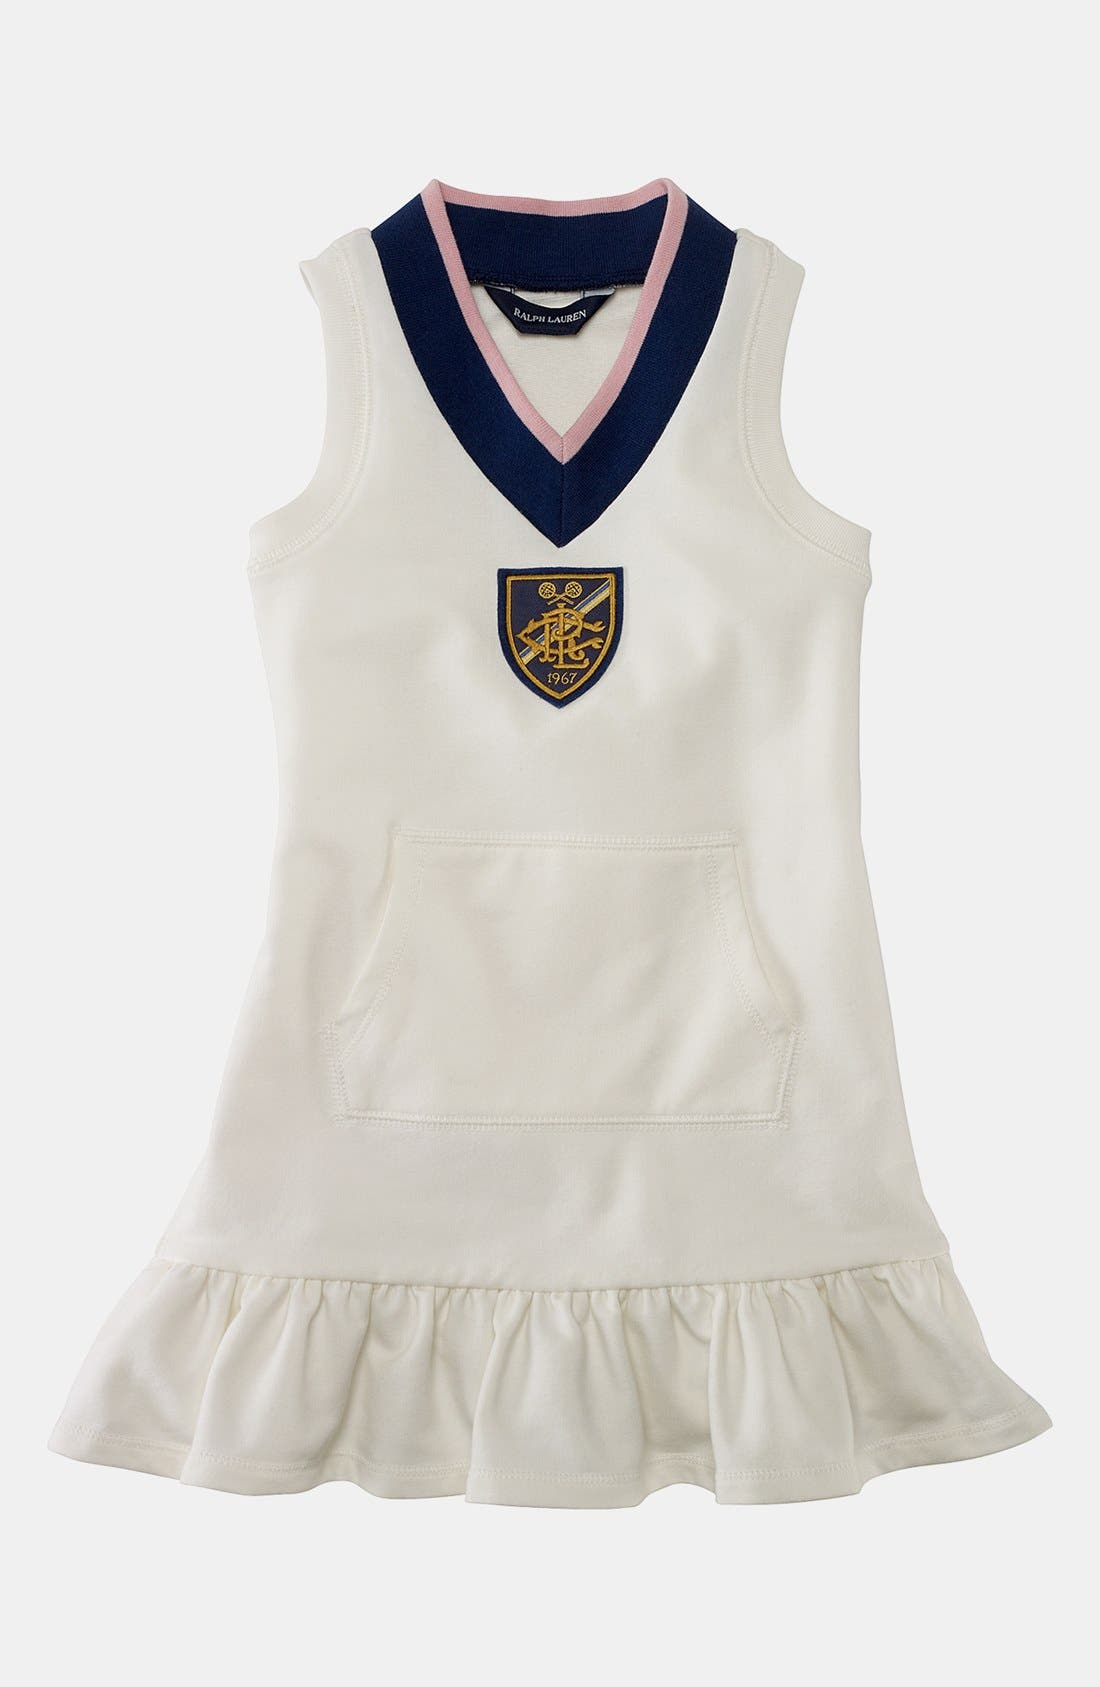 Main Image - Ralph Lauren Dress (Toddler)